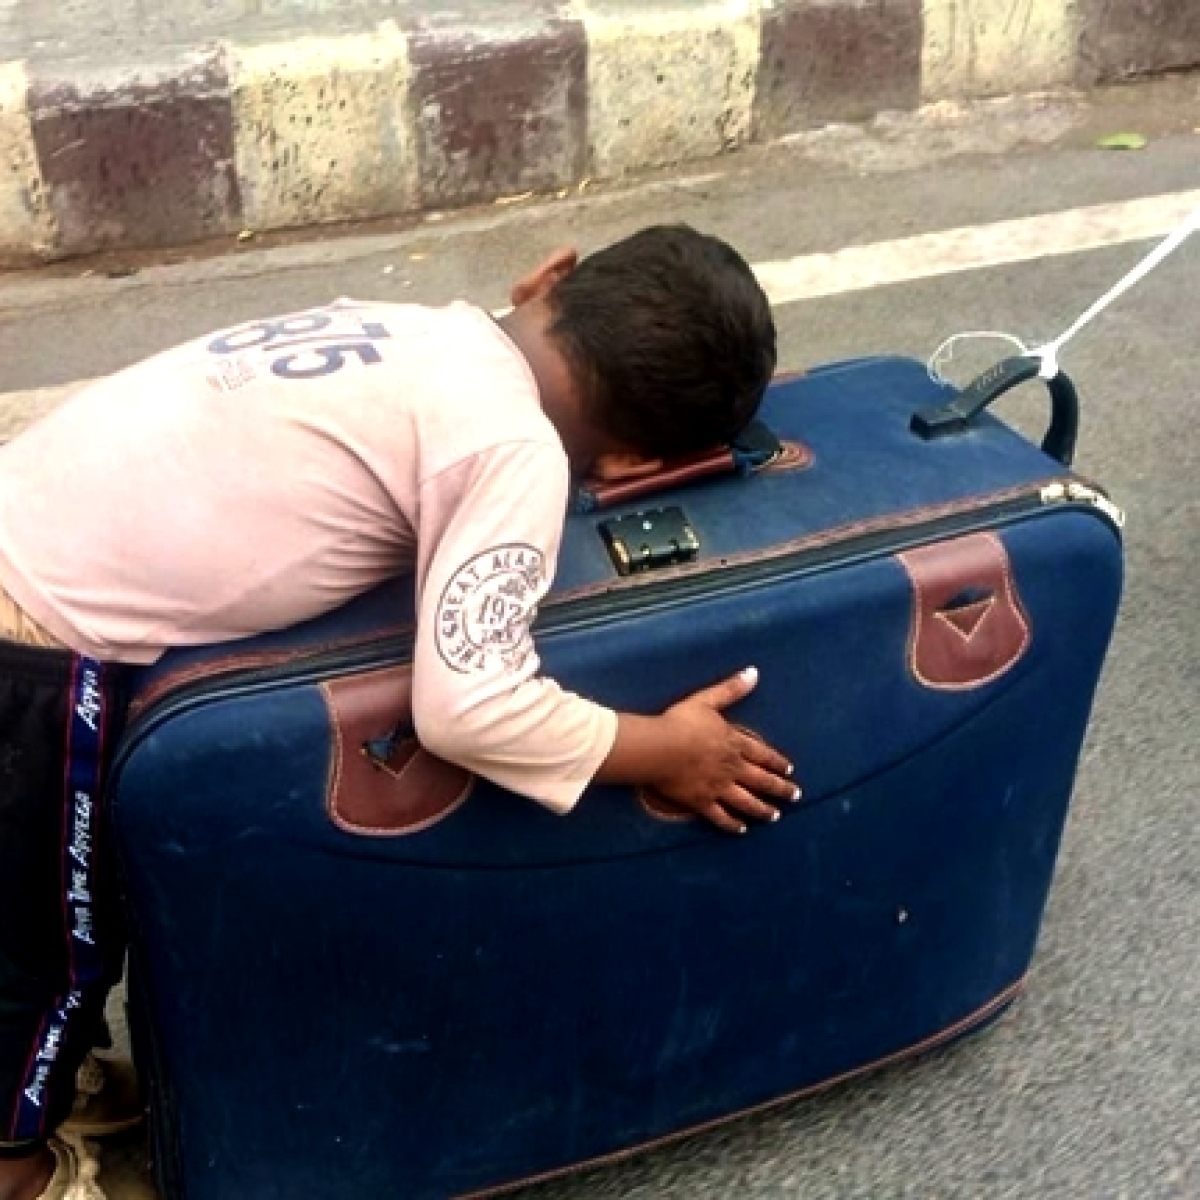 Unspeakable: Twitter heartbroken over video of migrant kid sleeping on mother's suitcase travelling on foot